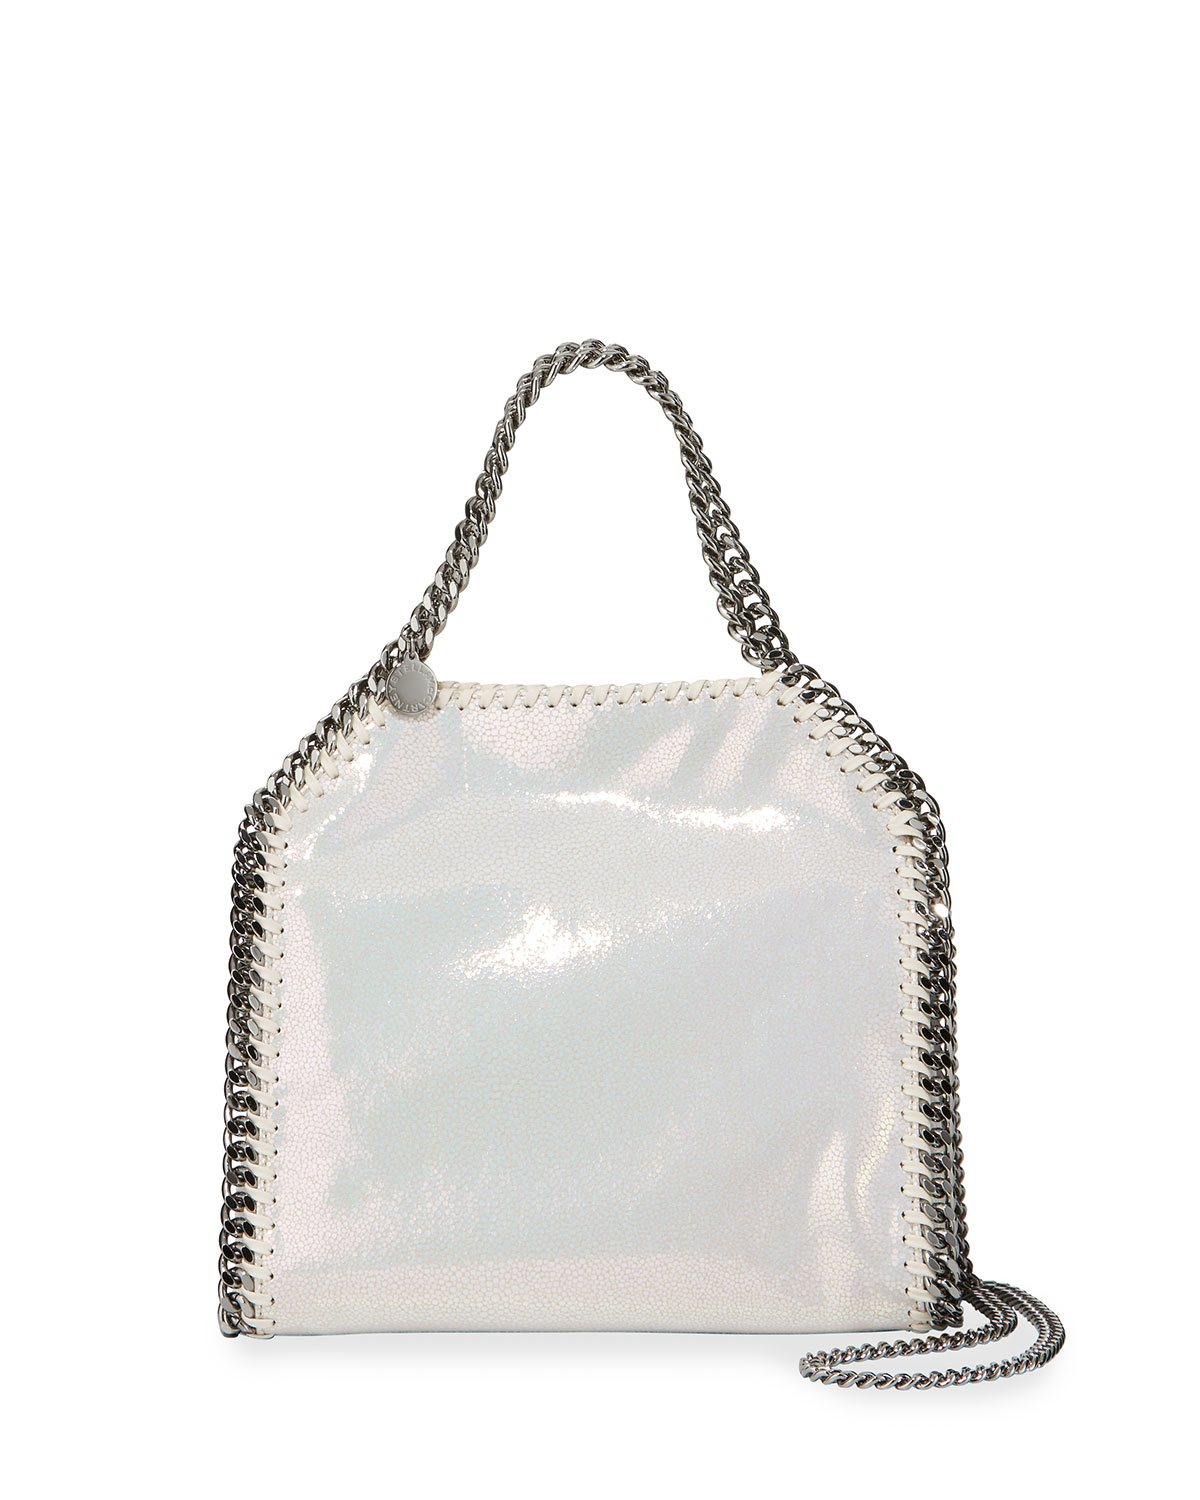 Iridescent Mini Falabella Tote Bag